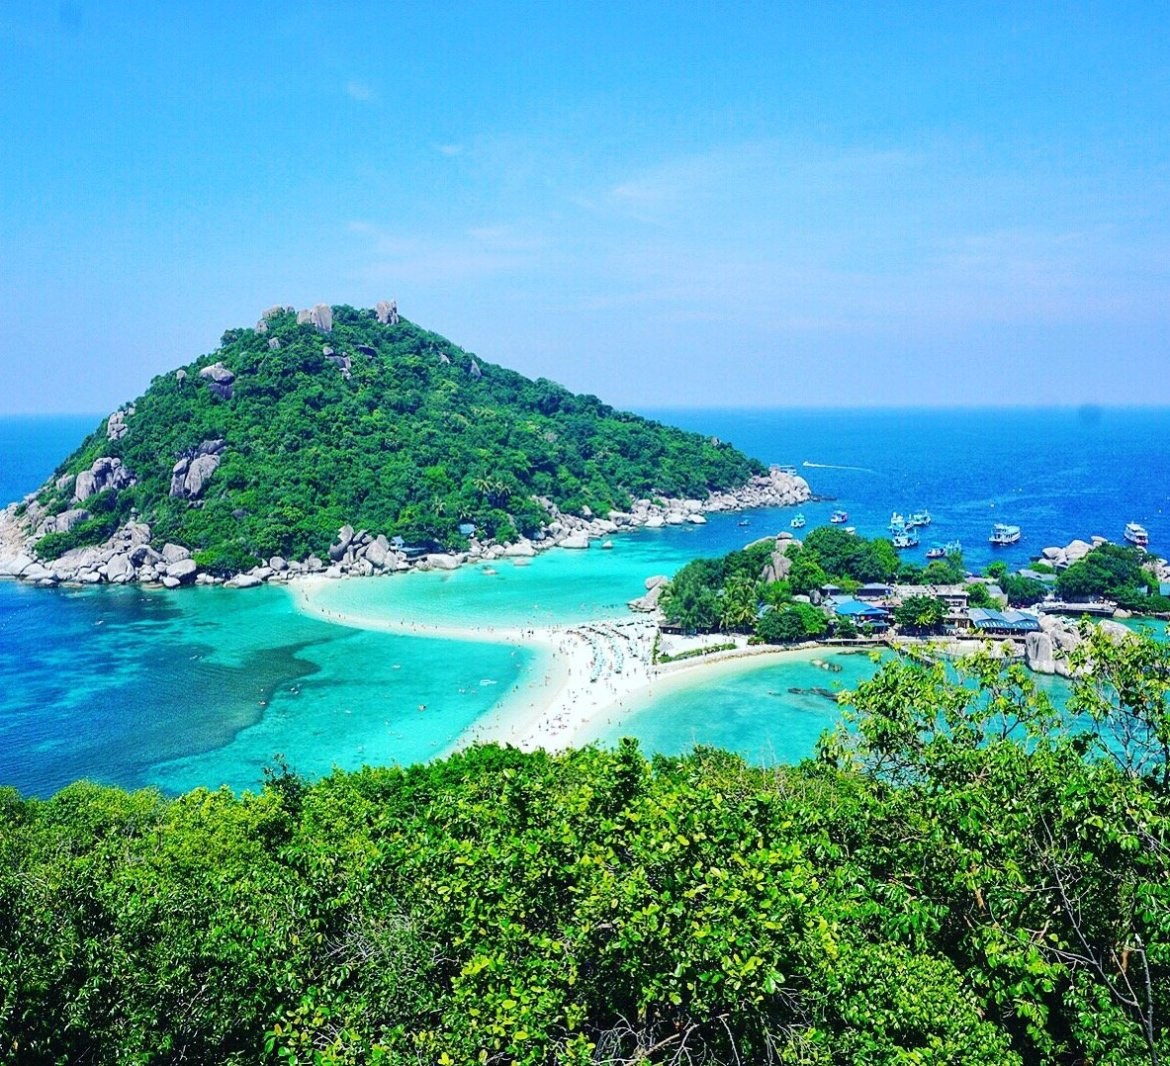 Phi Phi Relax Beach Resort: Thailand Travel Guide: What To See, Do & Eat